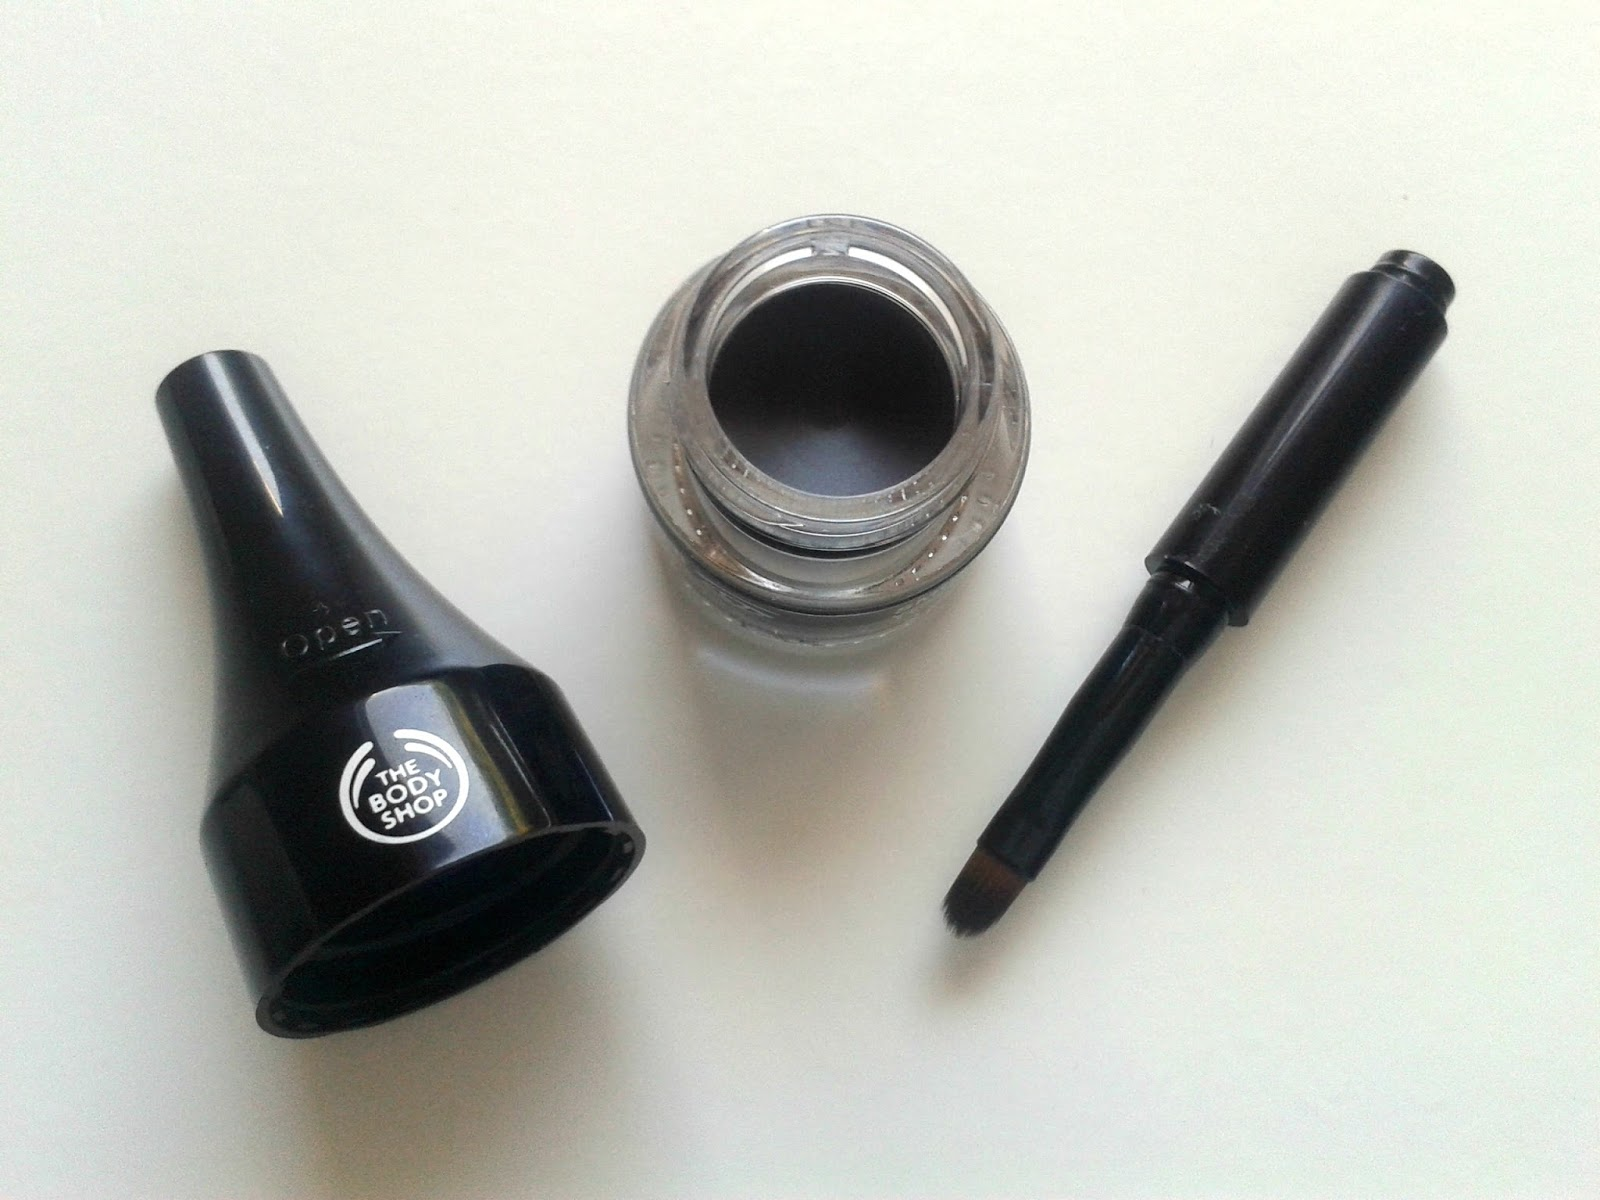 The Body Shop Smoky 2 in 1 Gel Liner Eyes And Brows Black Beauty Review Product